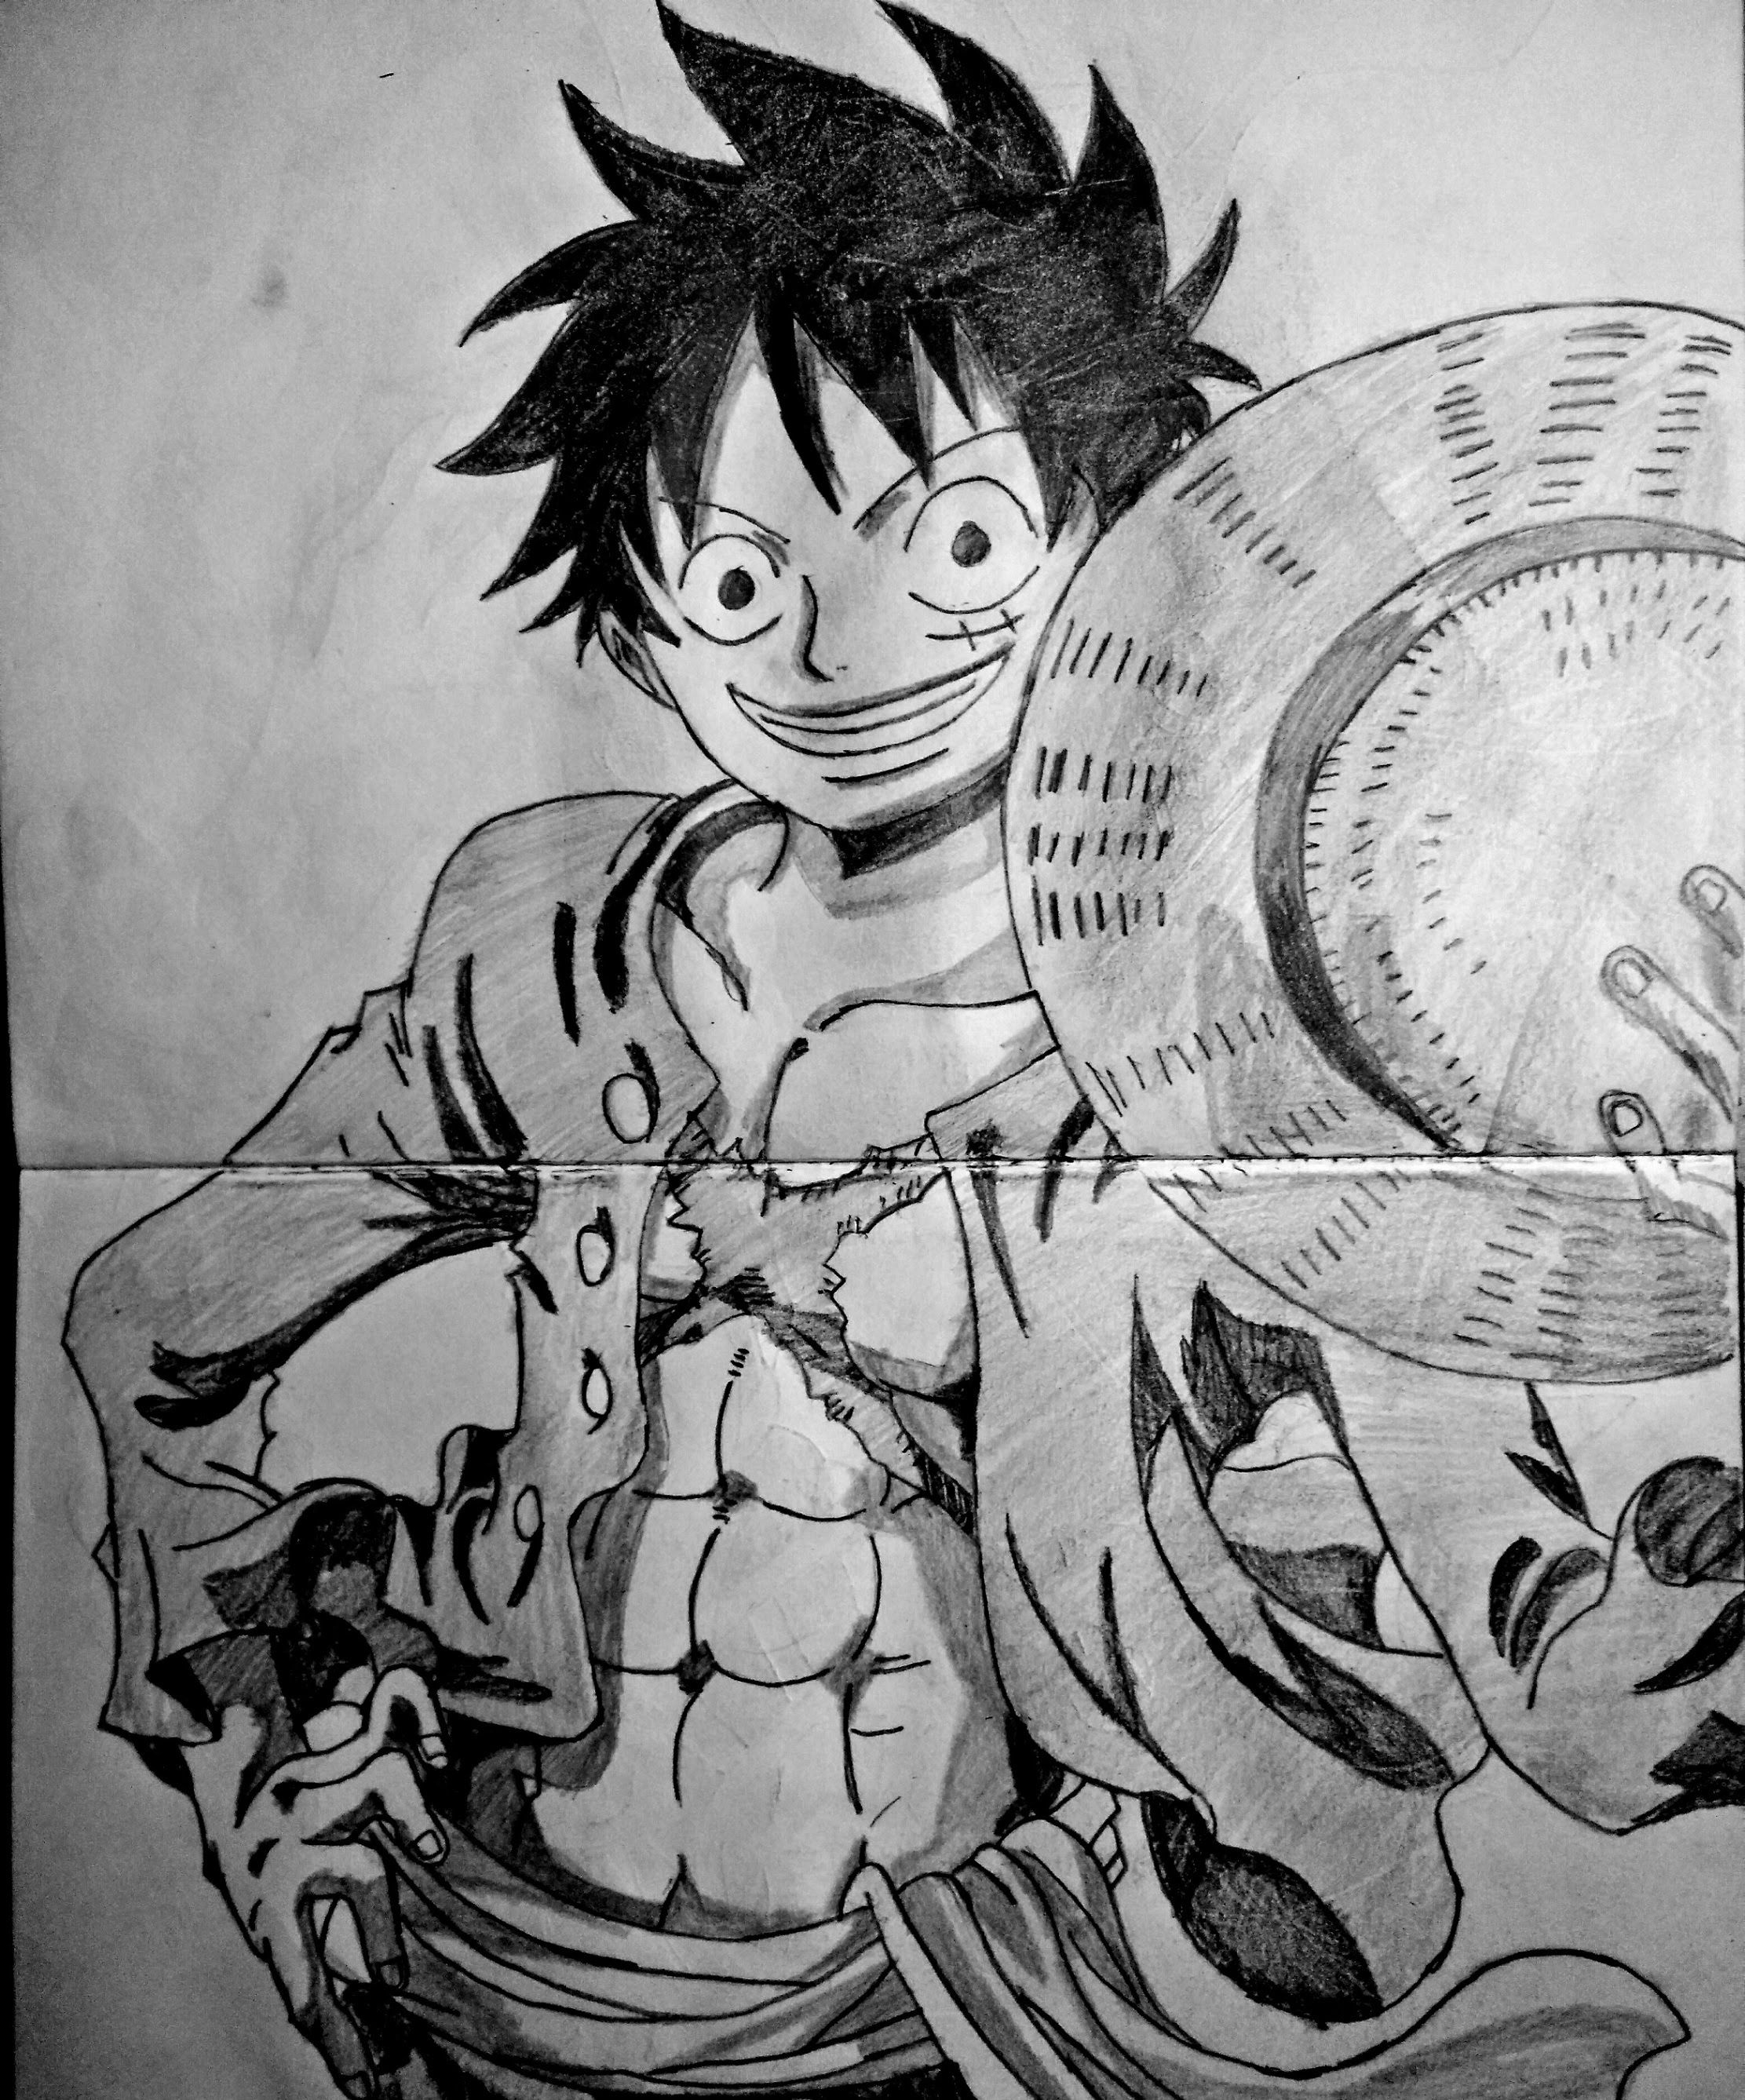 Speed drawing anime Monkey D. Luffy (One Piece)